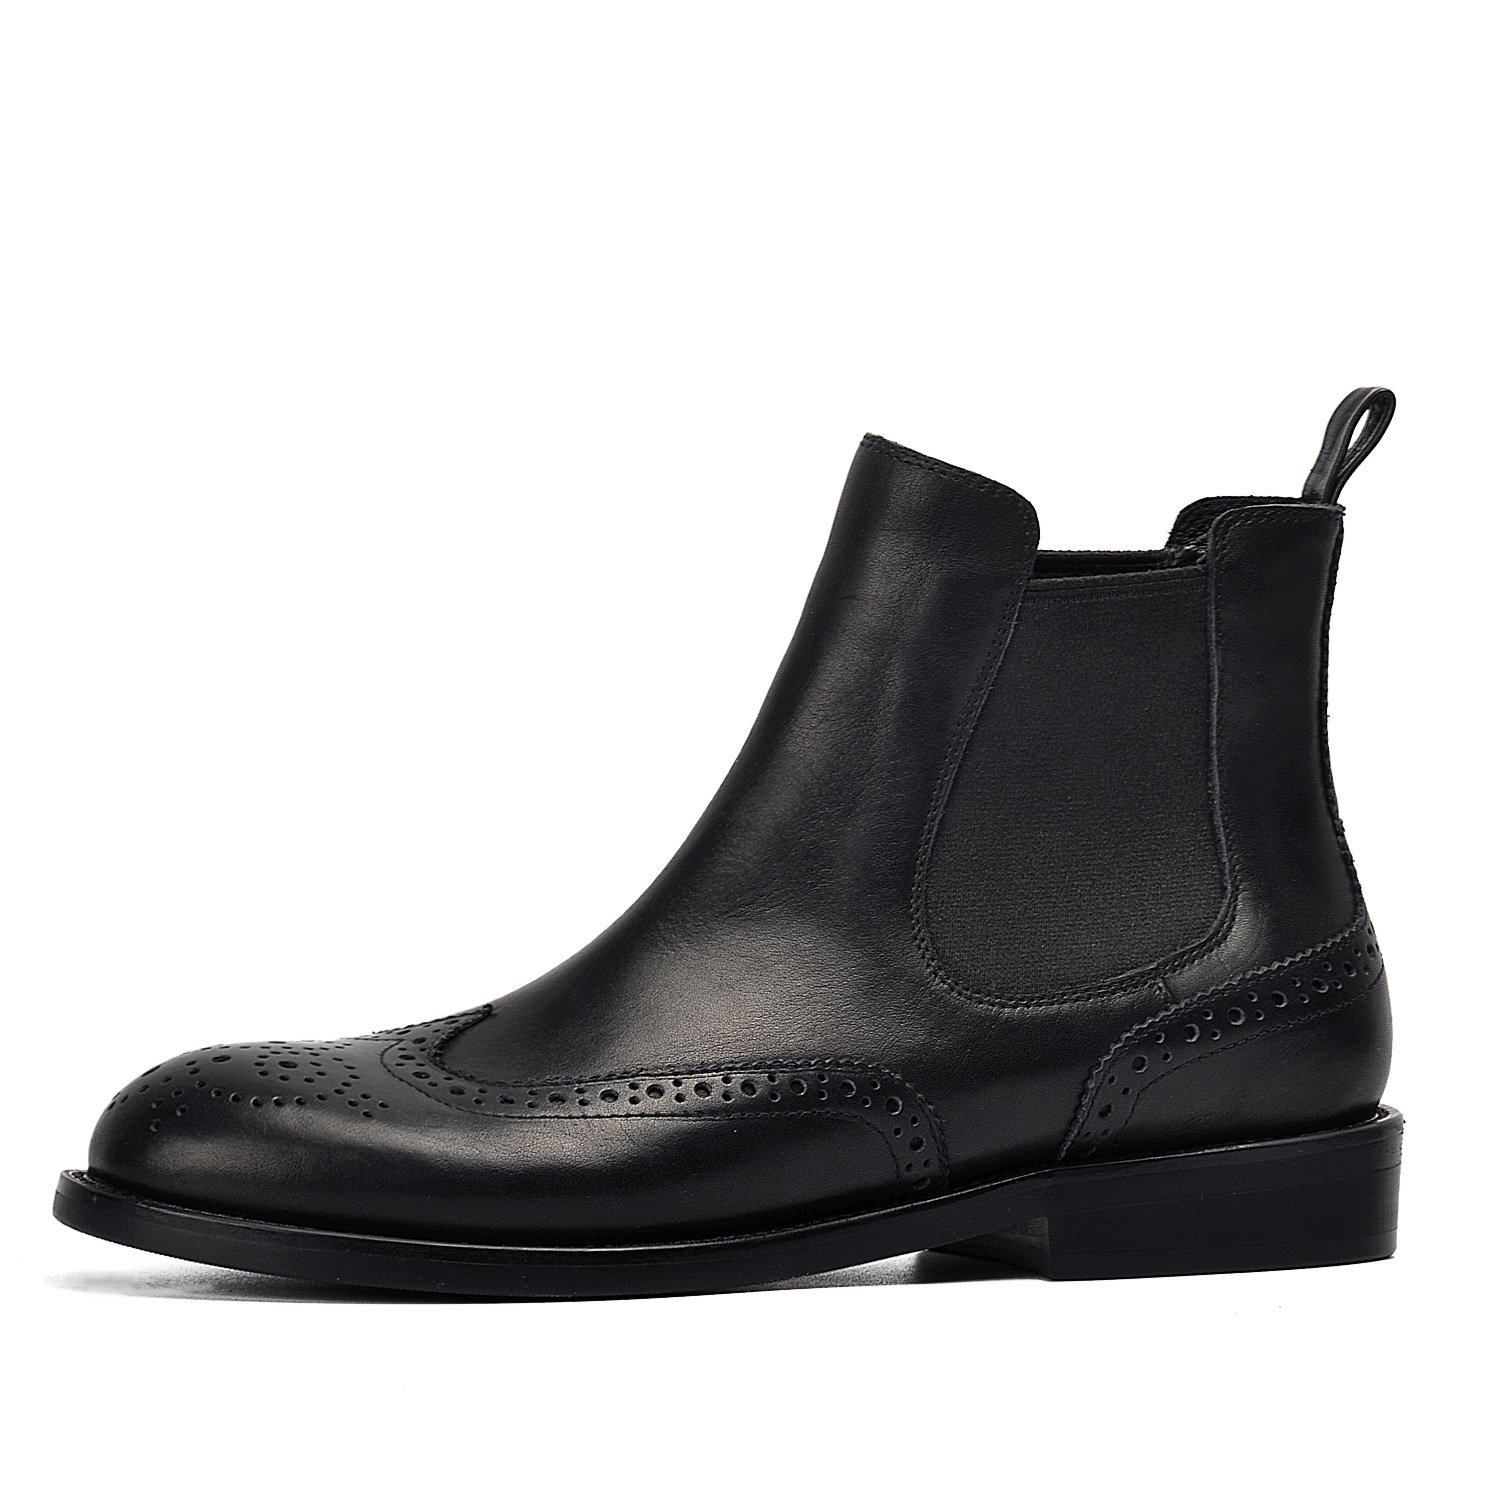 DONNAIN Women Ankle Boot Black Genuine Leather Wingtip Brogues Shoes Chelsea Boots Low Heel Booties For Spring B079BS8YTL 5.5 B(M) US Black